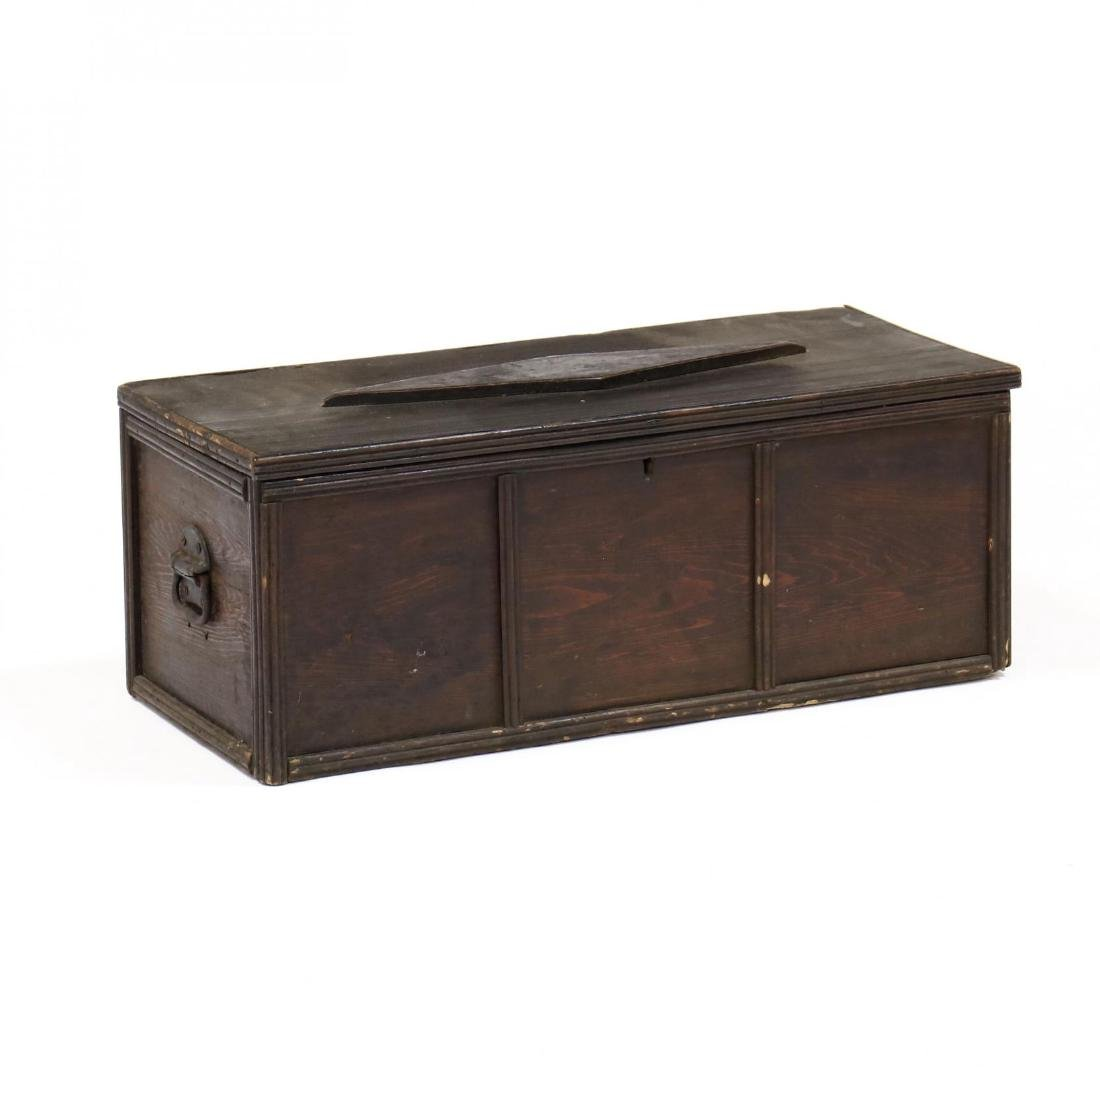 Antique Officer's Campaign Box